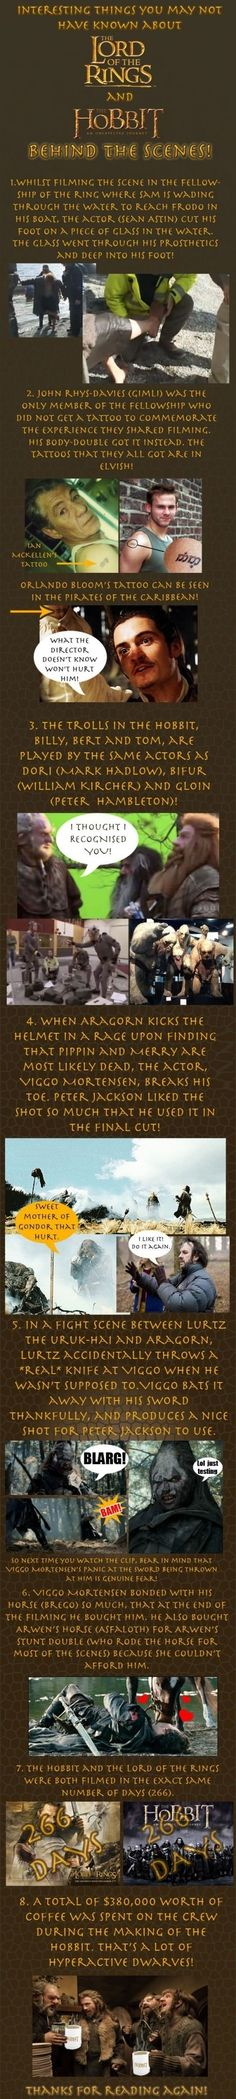 Lotr & Hobbit Behind the Scenes Facts